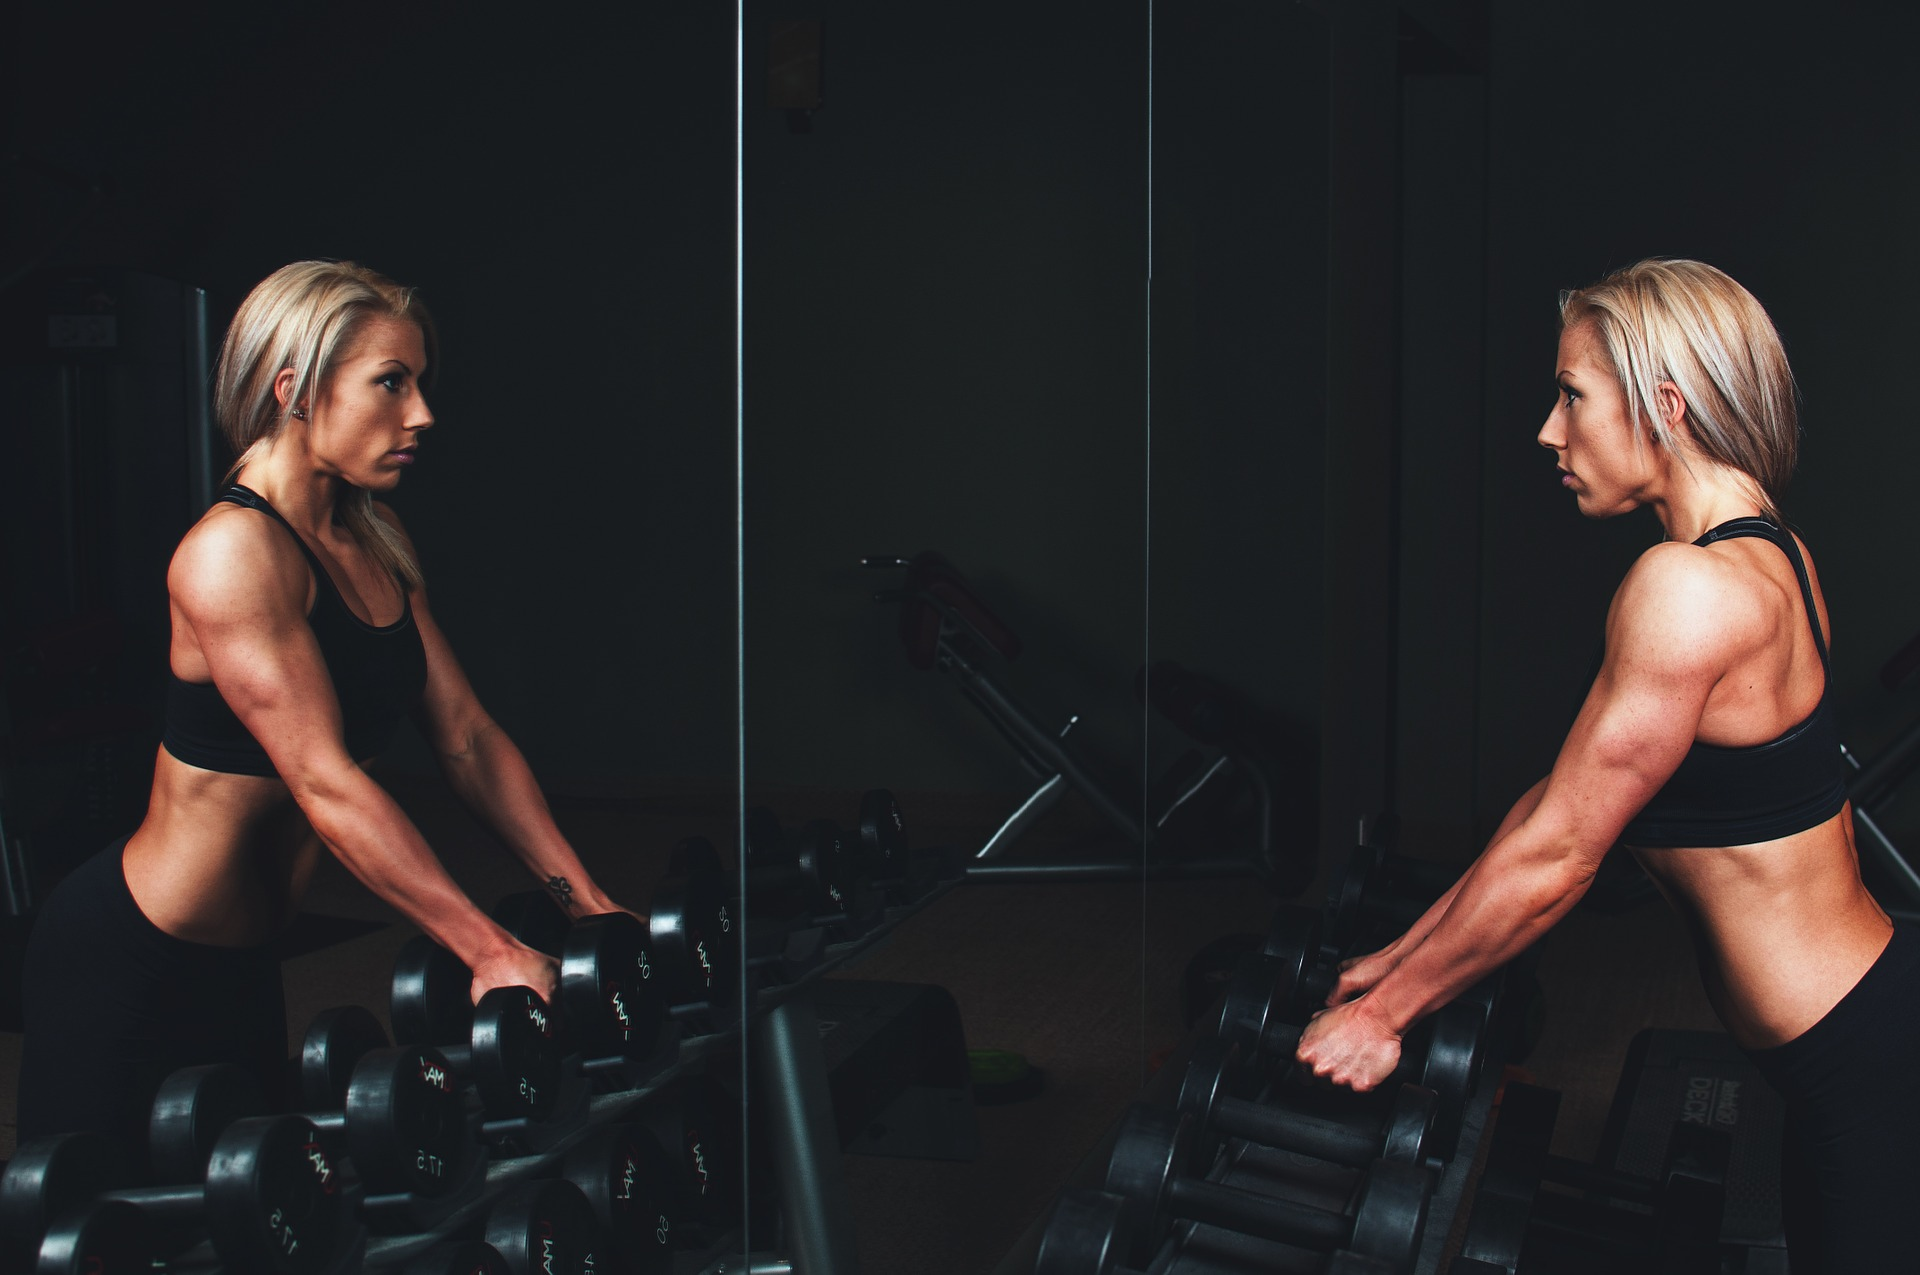 online personal trainer,Online personal trainers,online personal training packages,fat loss personal trainer,personal trainer near me